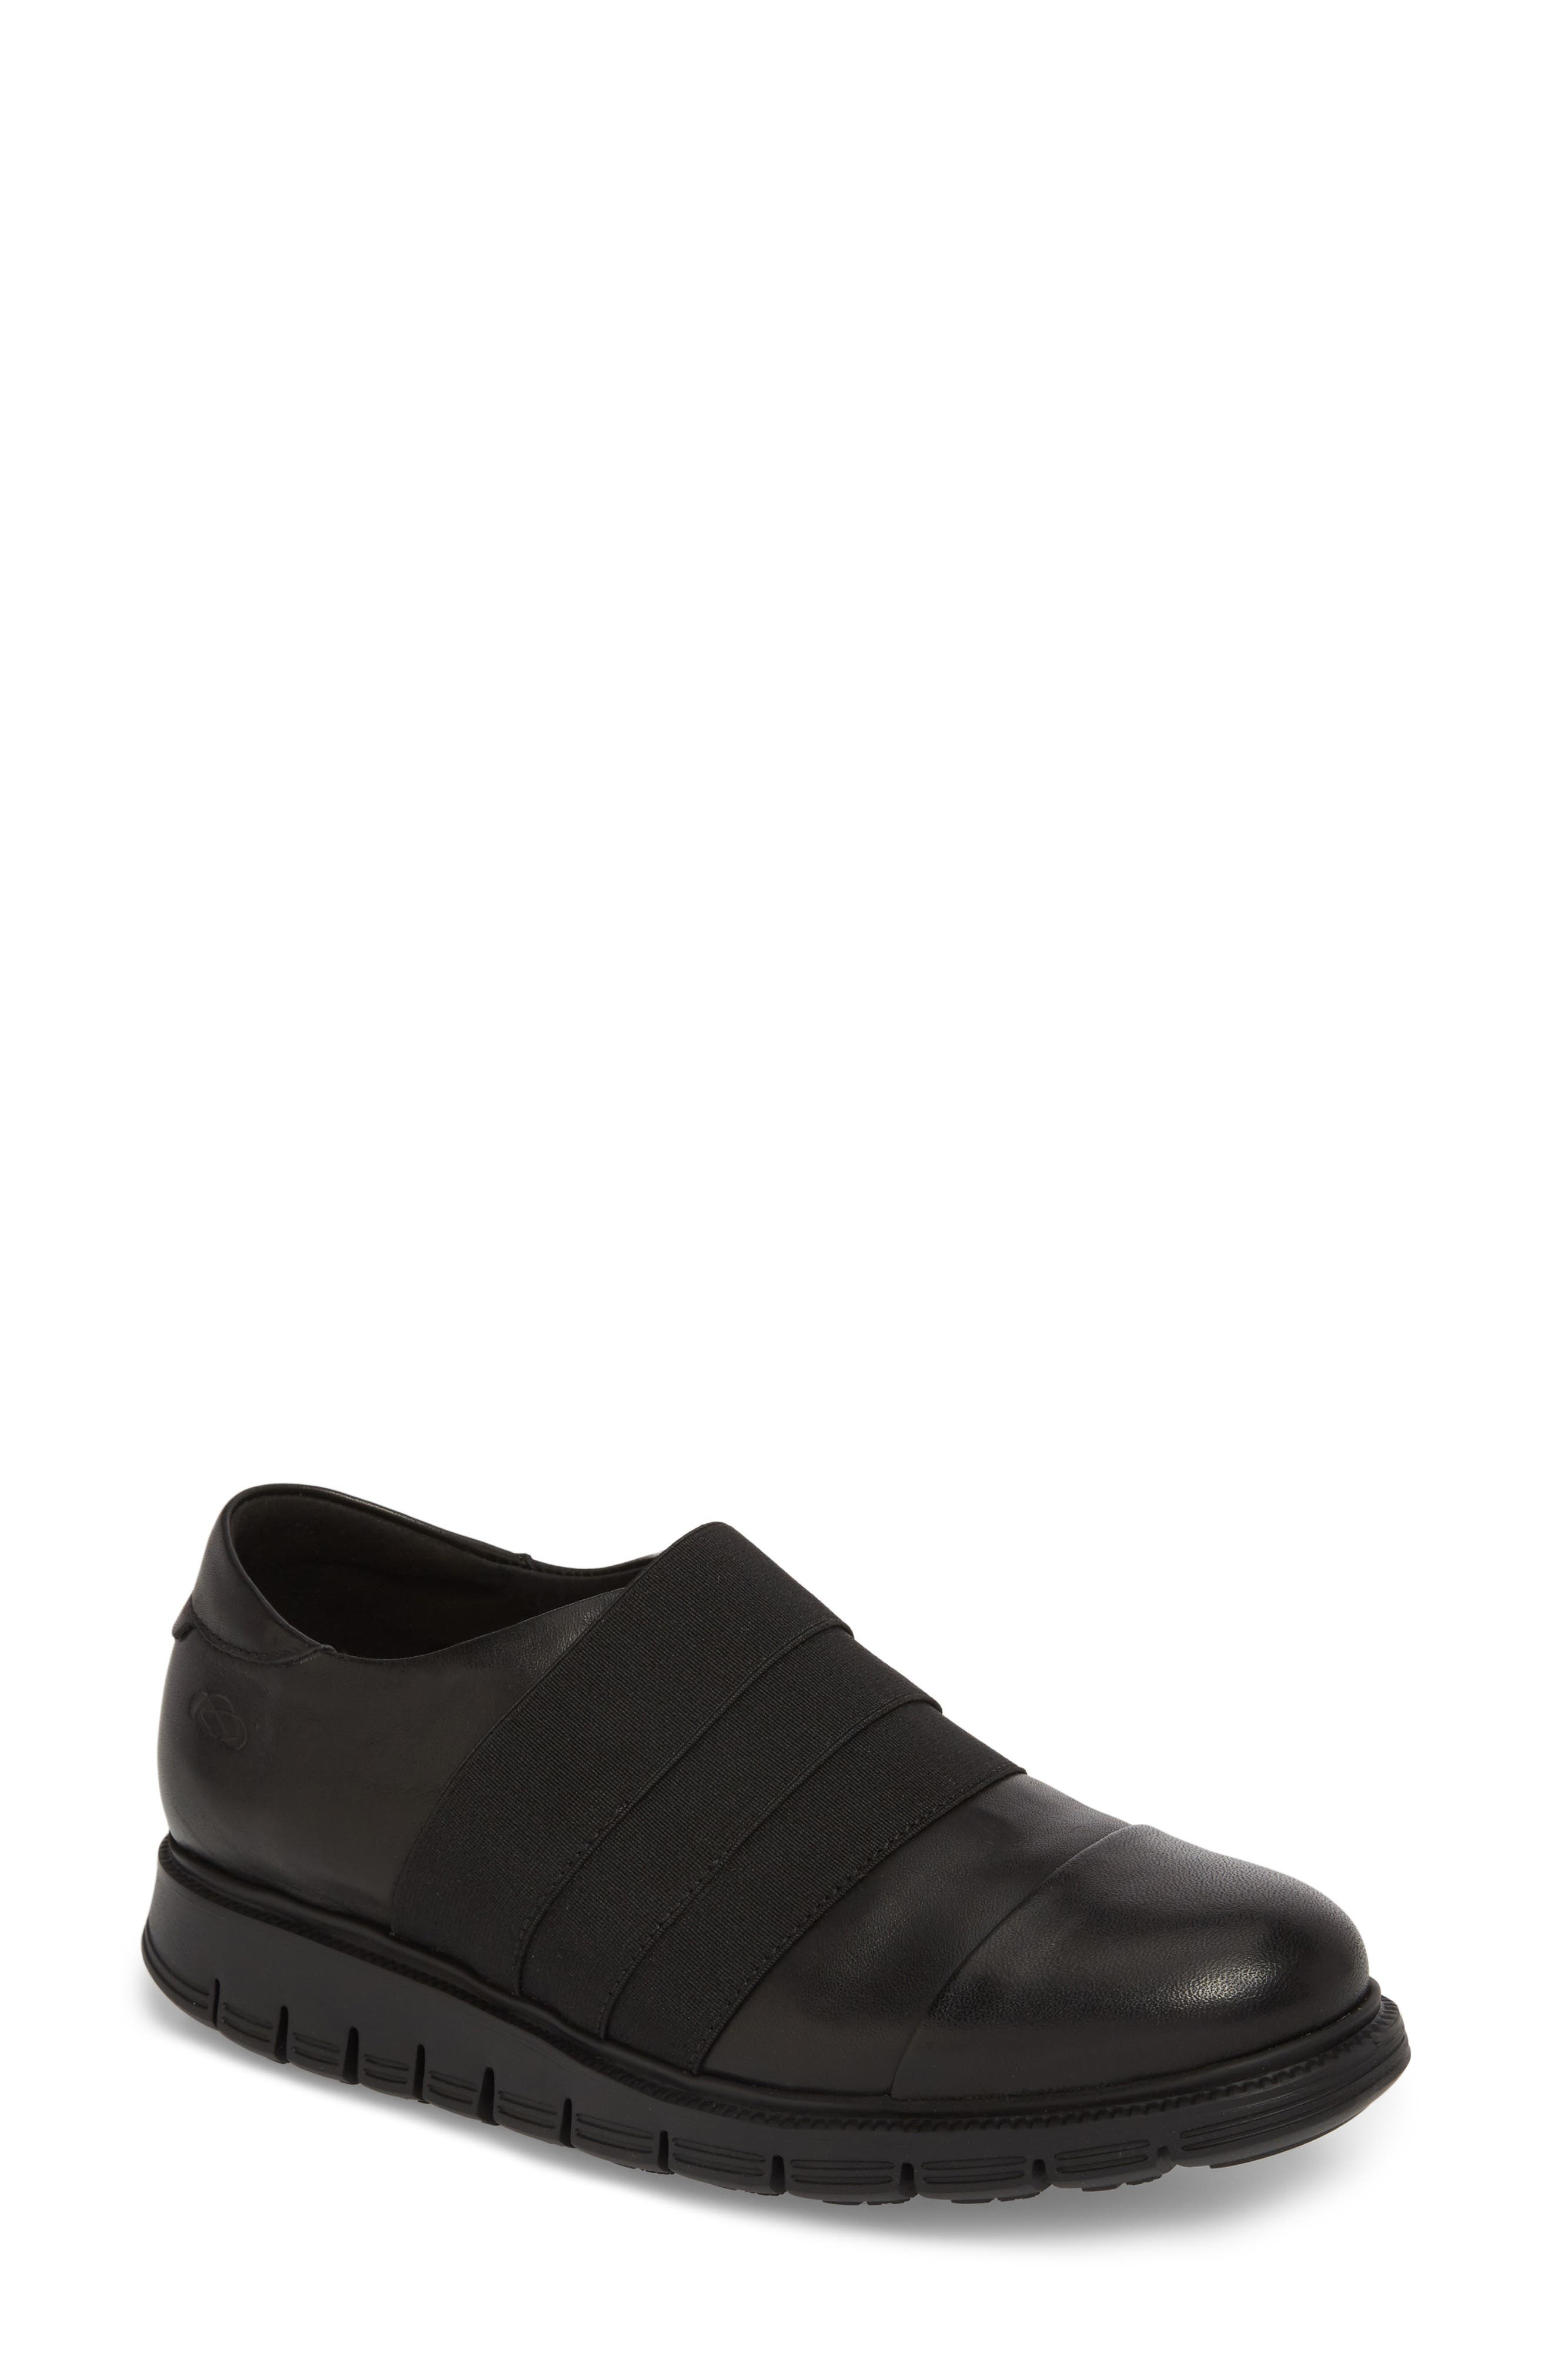 Grace Slip-On Sneaker,                         Main,                         color, Black Leather